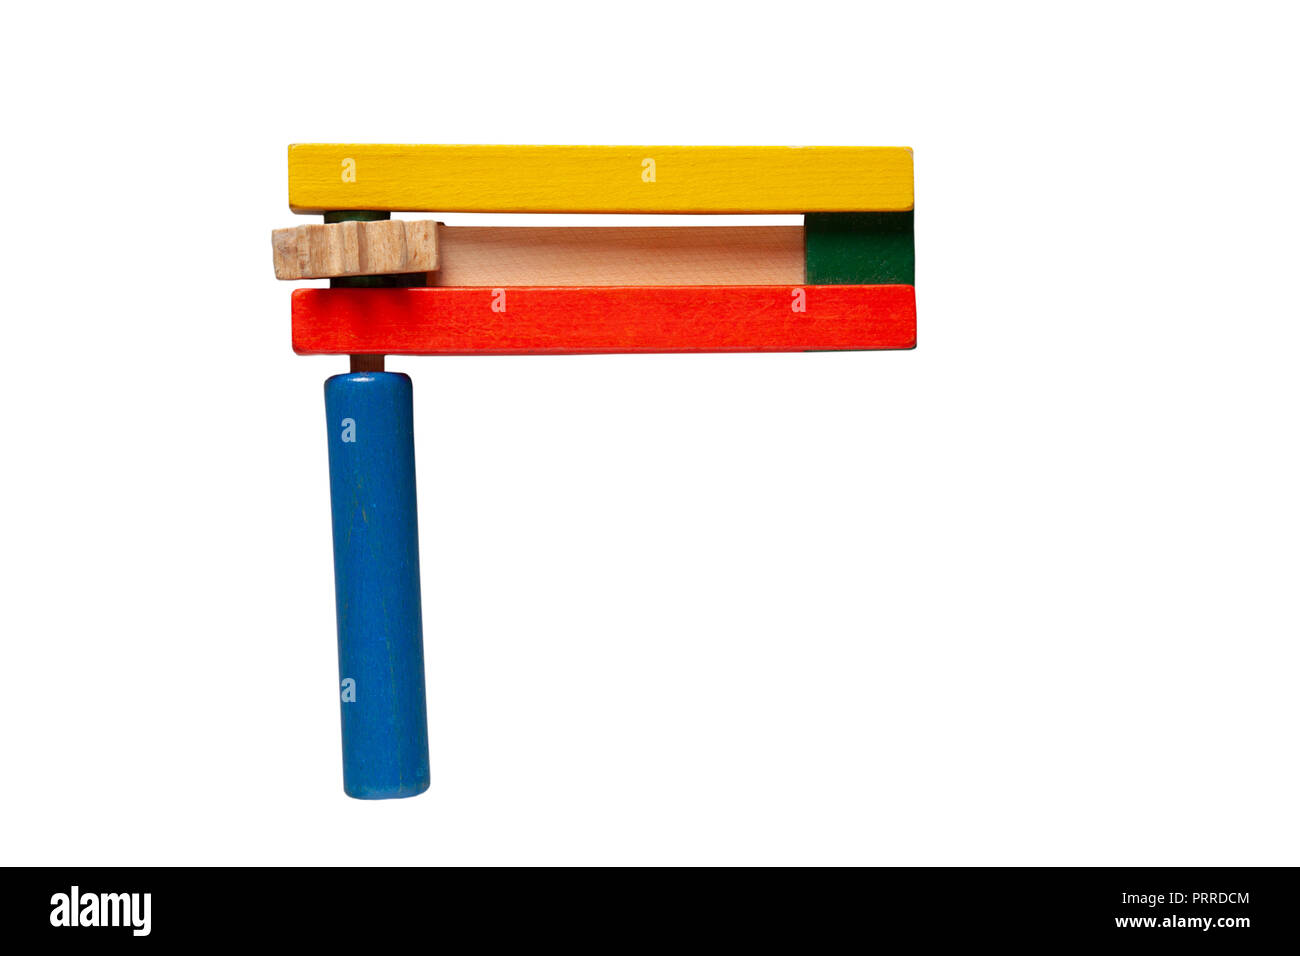 A Jewish graggar / greggar / grogger / groger / grager / gragger, a rattle / noisemaker, ratchet / ra'ashan used to blot out Haman's name during Purim - Stock Image